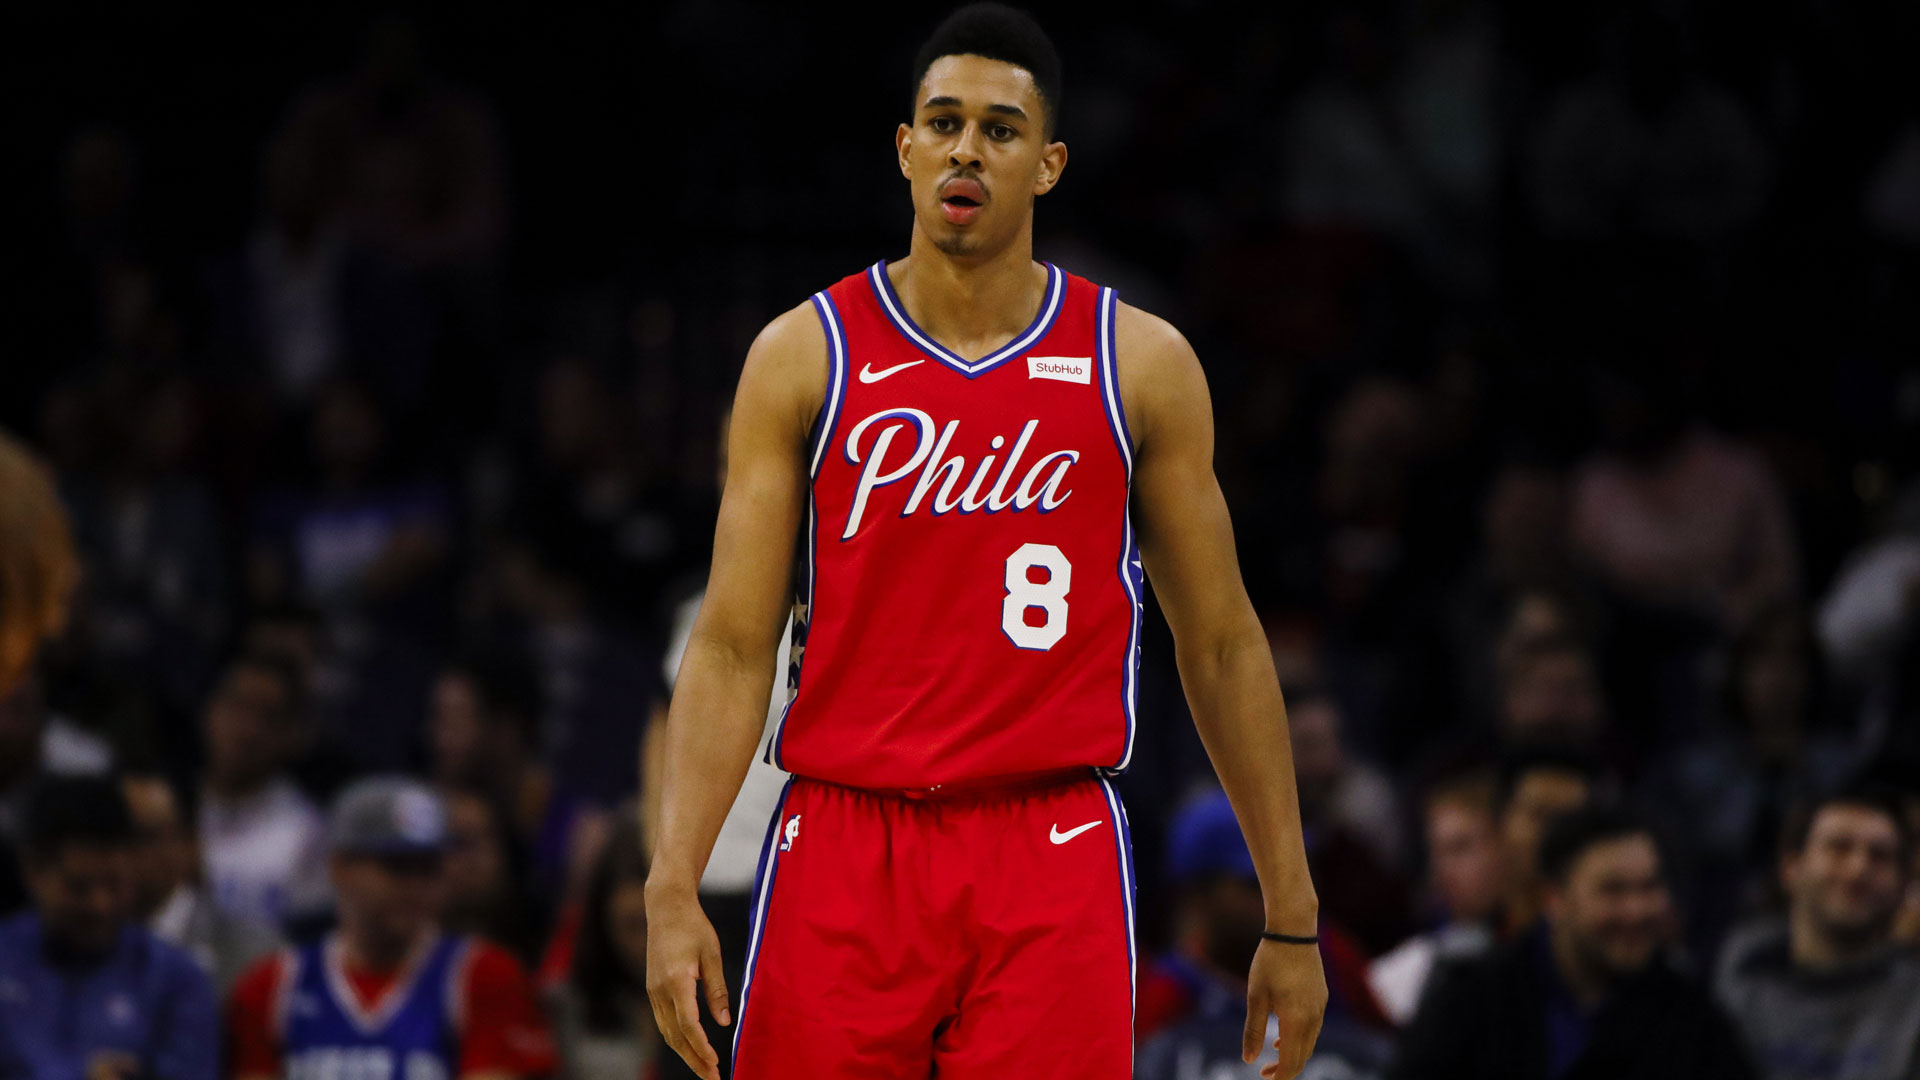 Sixers show they have faith in Zhaire Smith for the future